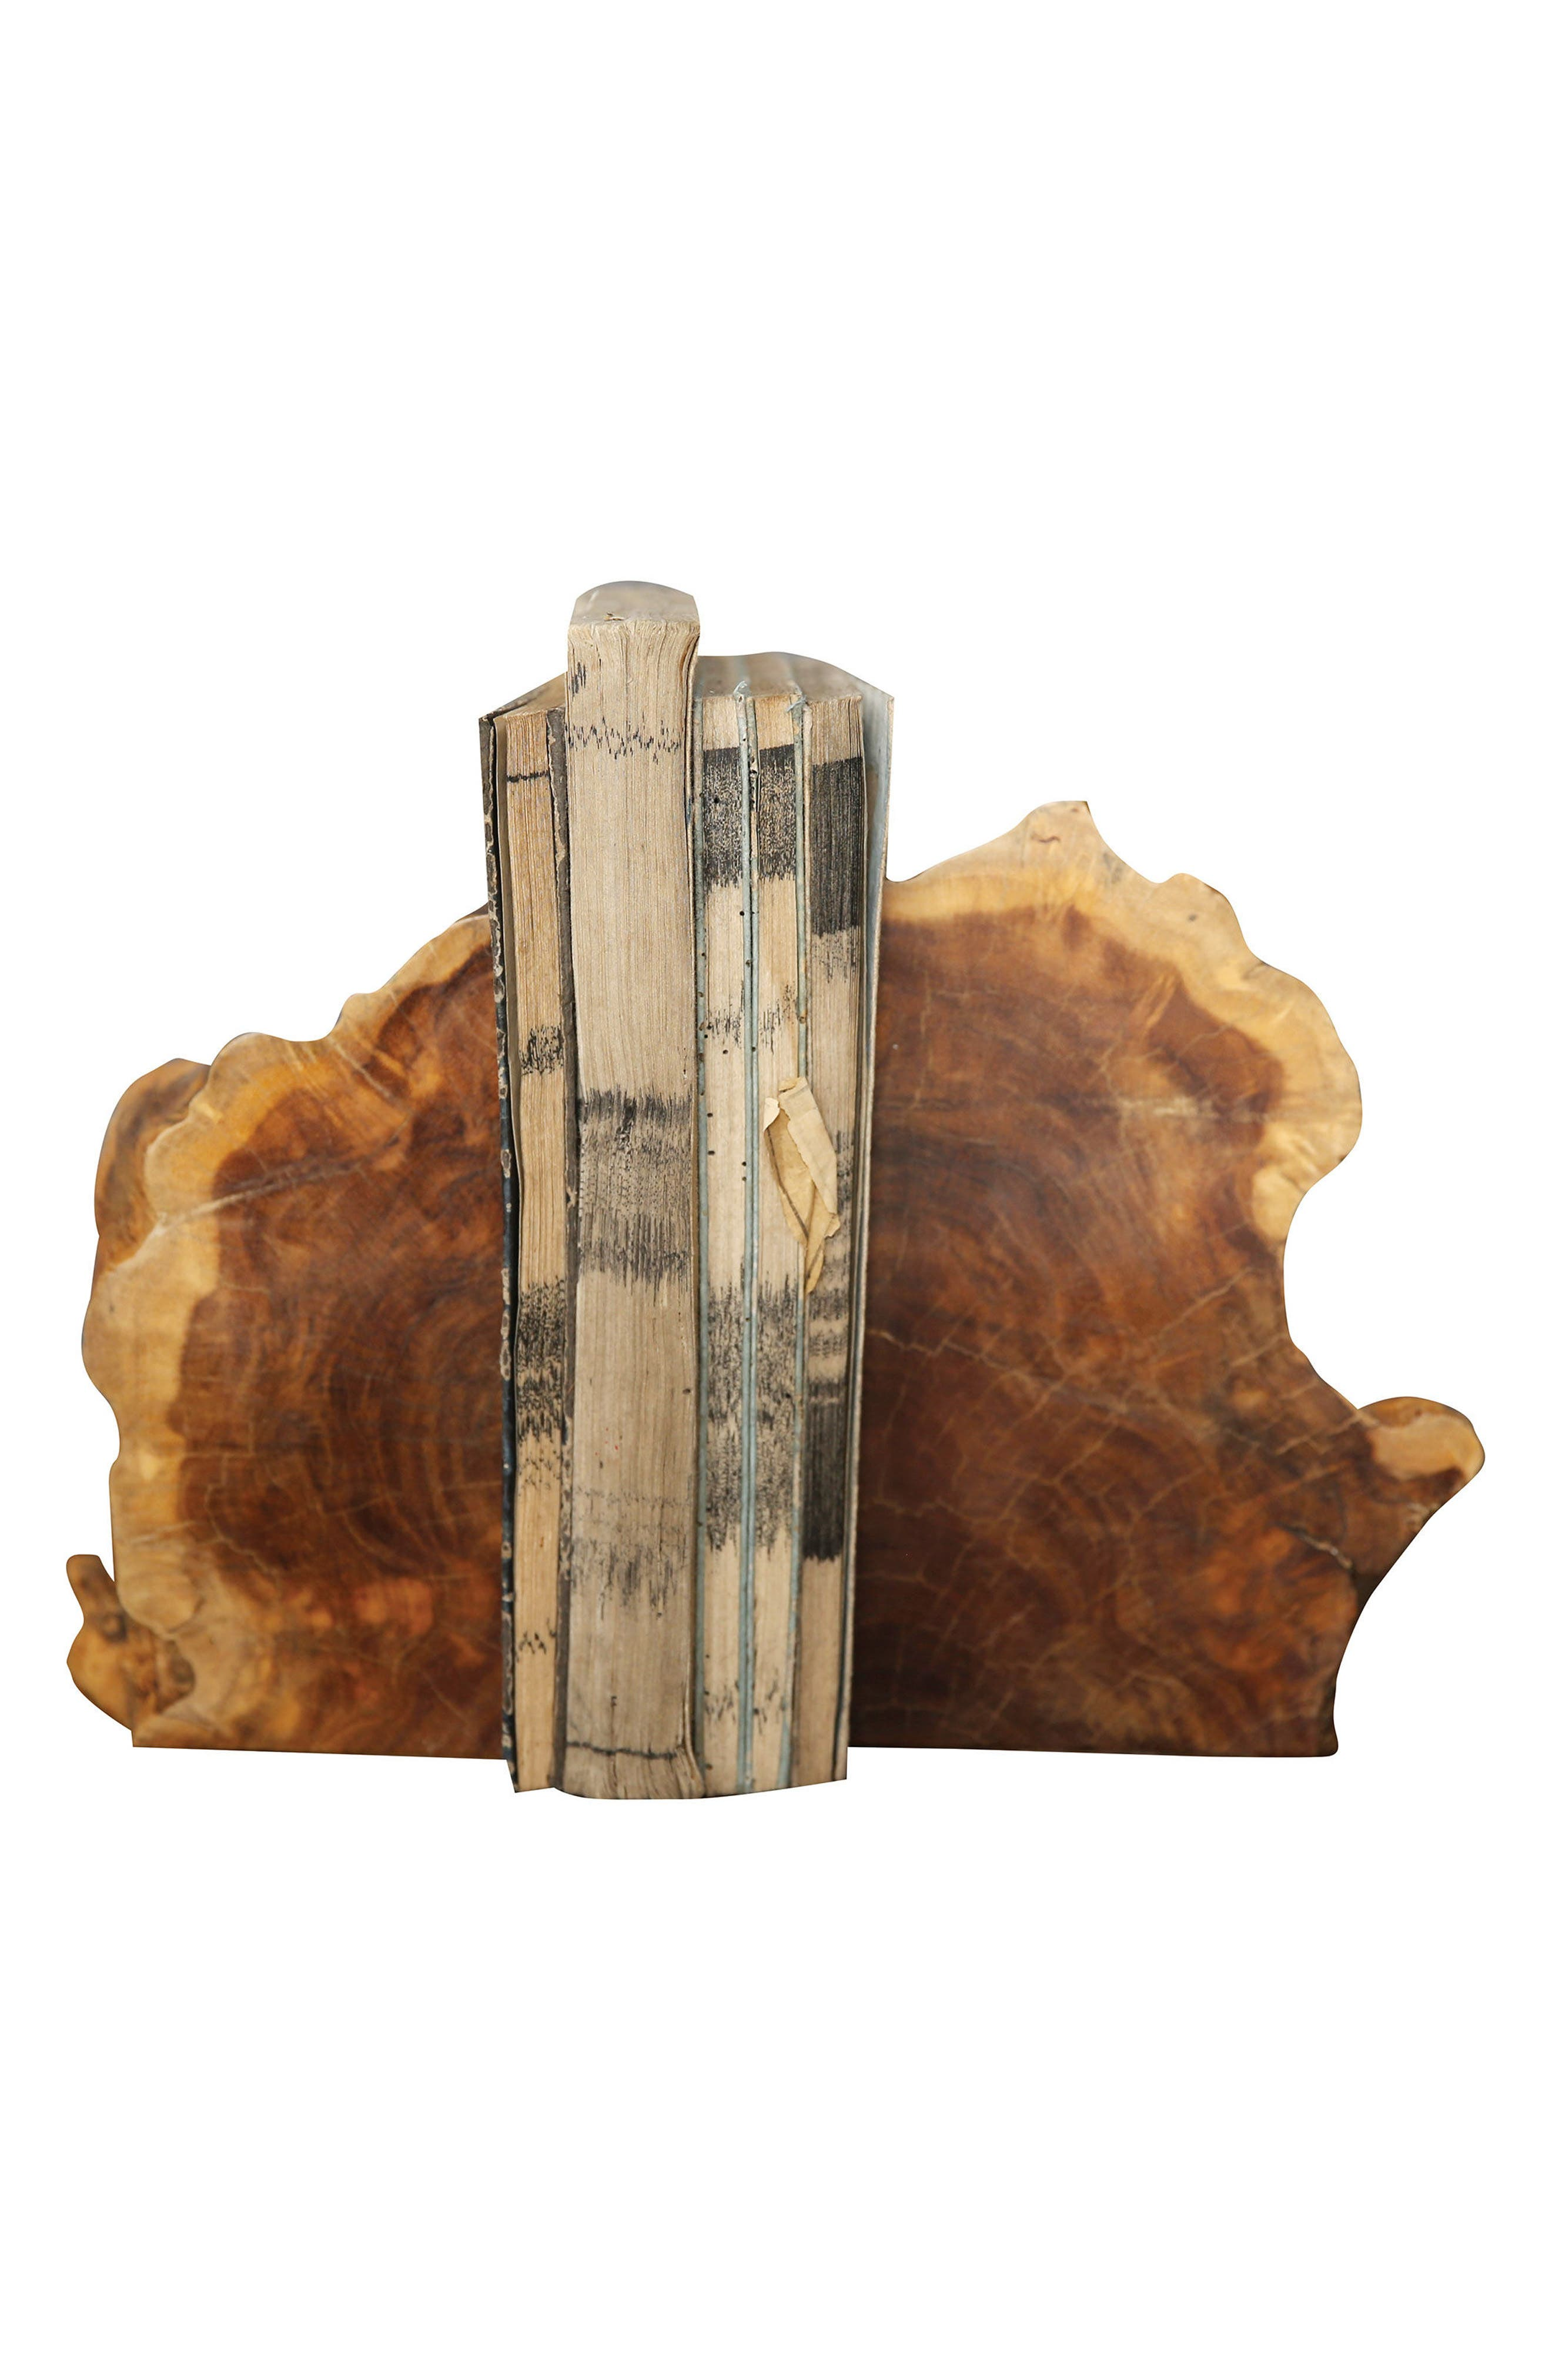 Creative Co-Op Set of 2 Wood Bookends